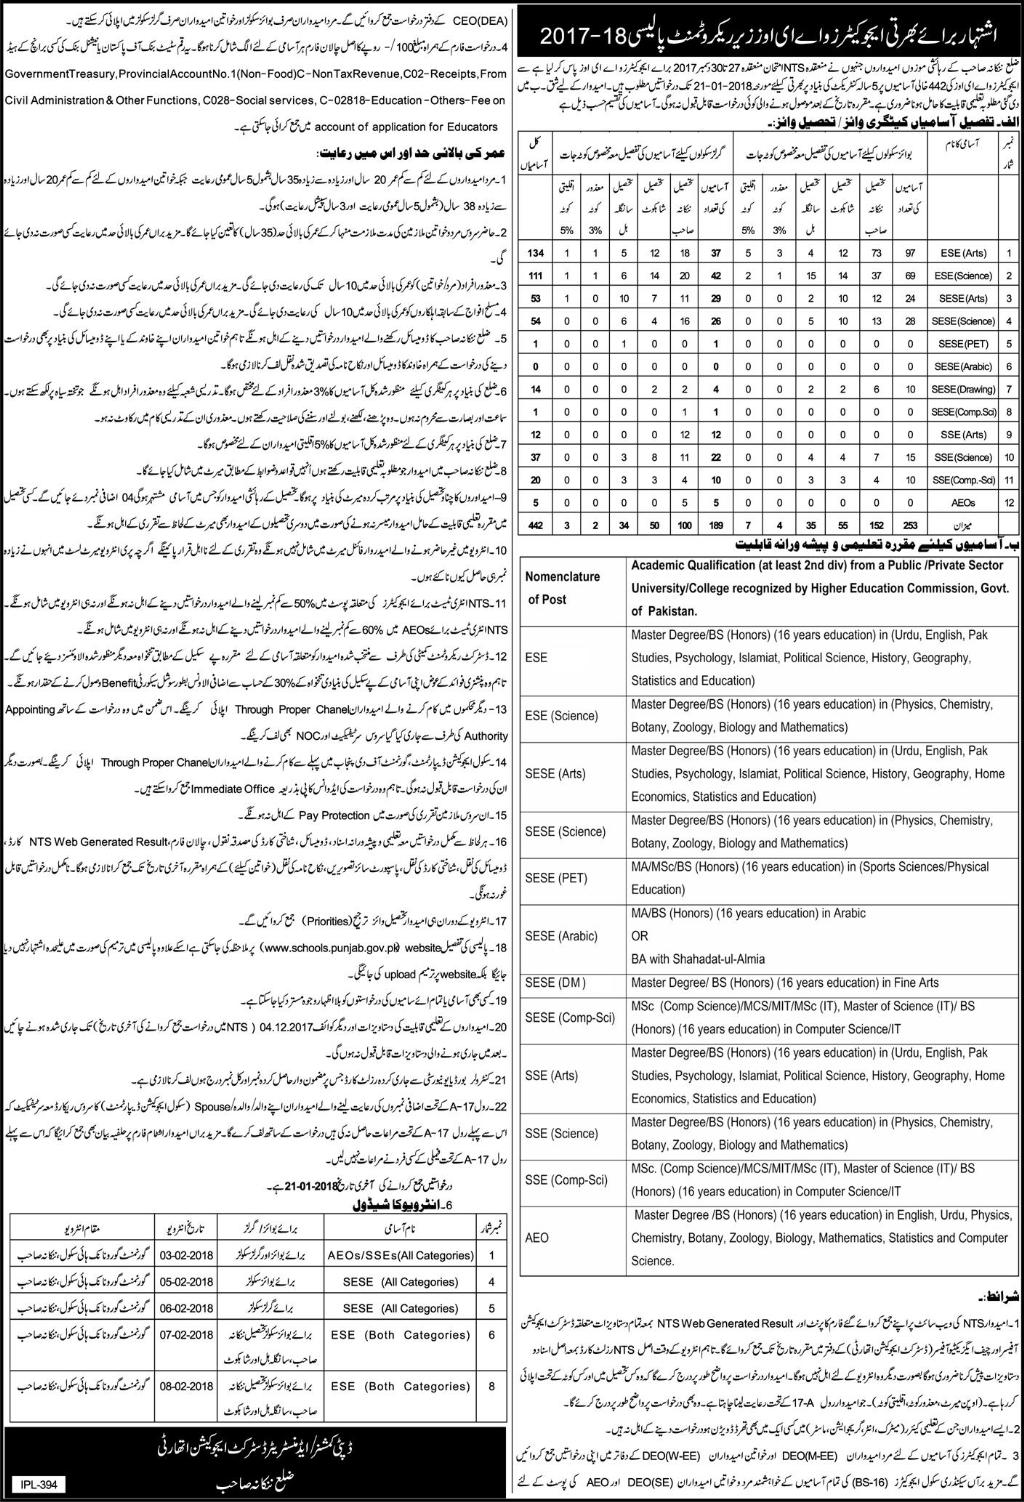 Nankana Sahib District Education Authority, Educators and AEO's 442 Jobs 11 January 2018 Express Newspaper